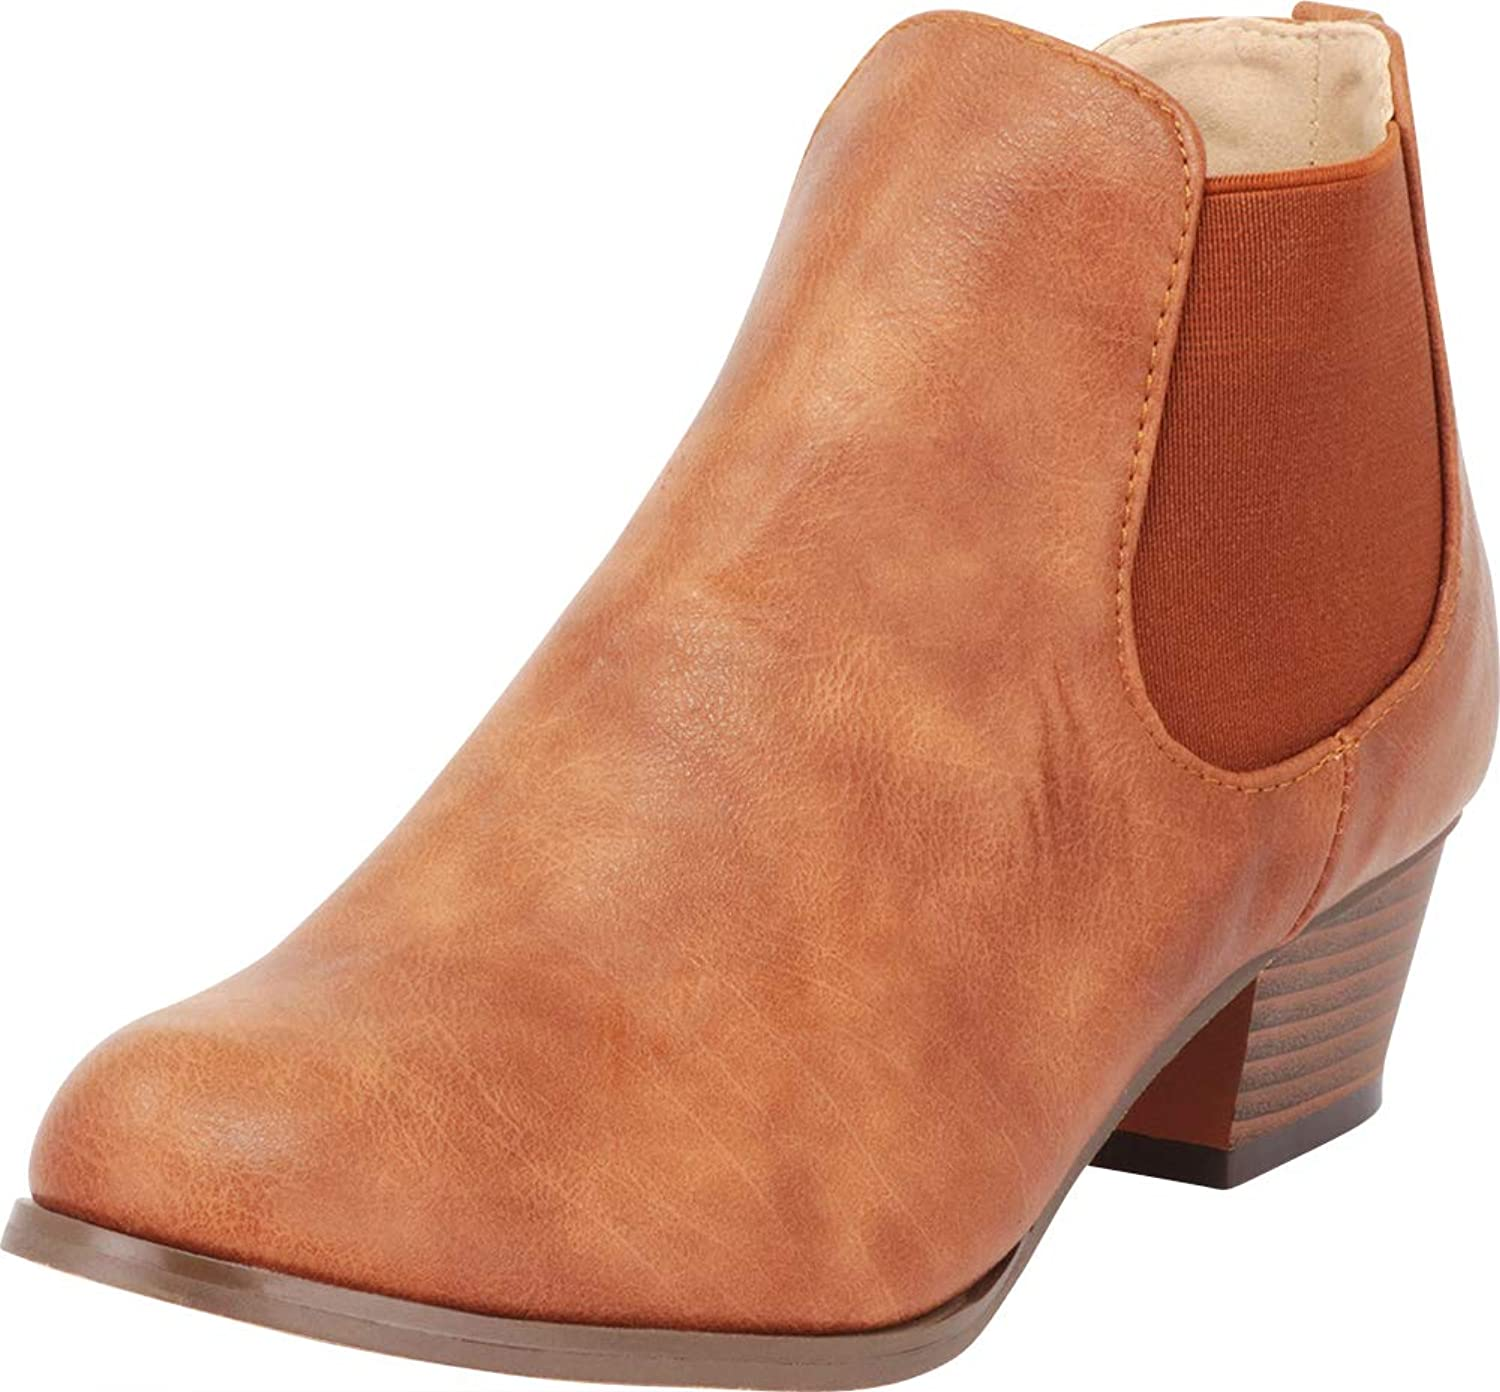 Cambridge Select Women's Chelsea Stretch Chunky Stacked Block Heel Ankle Bootie